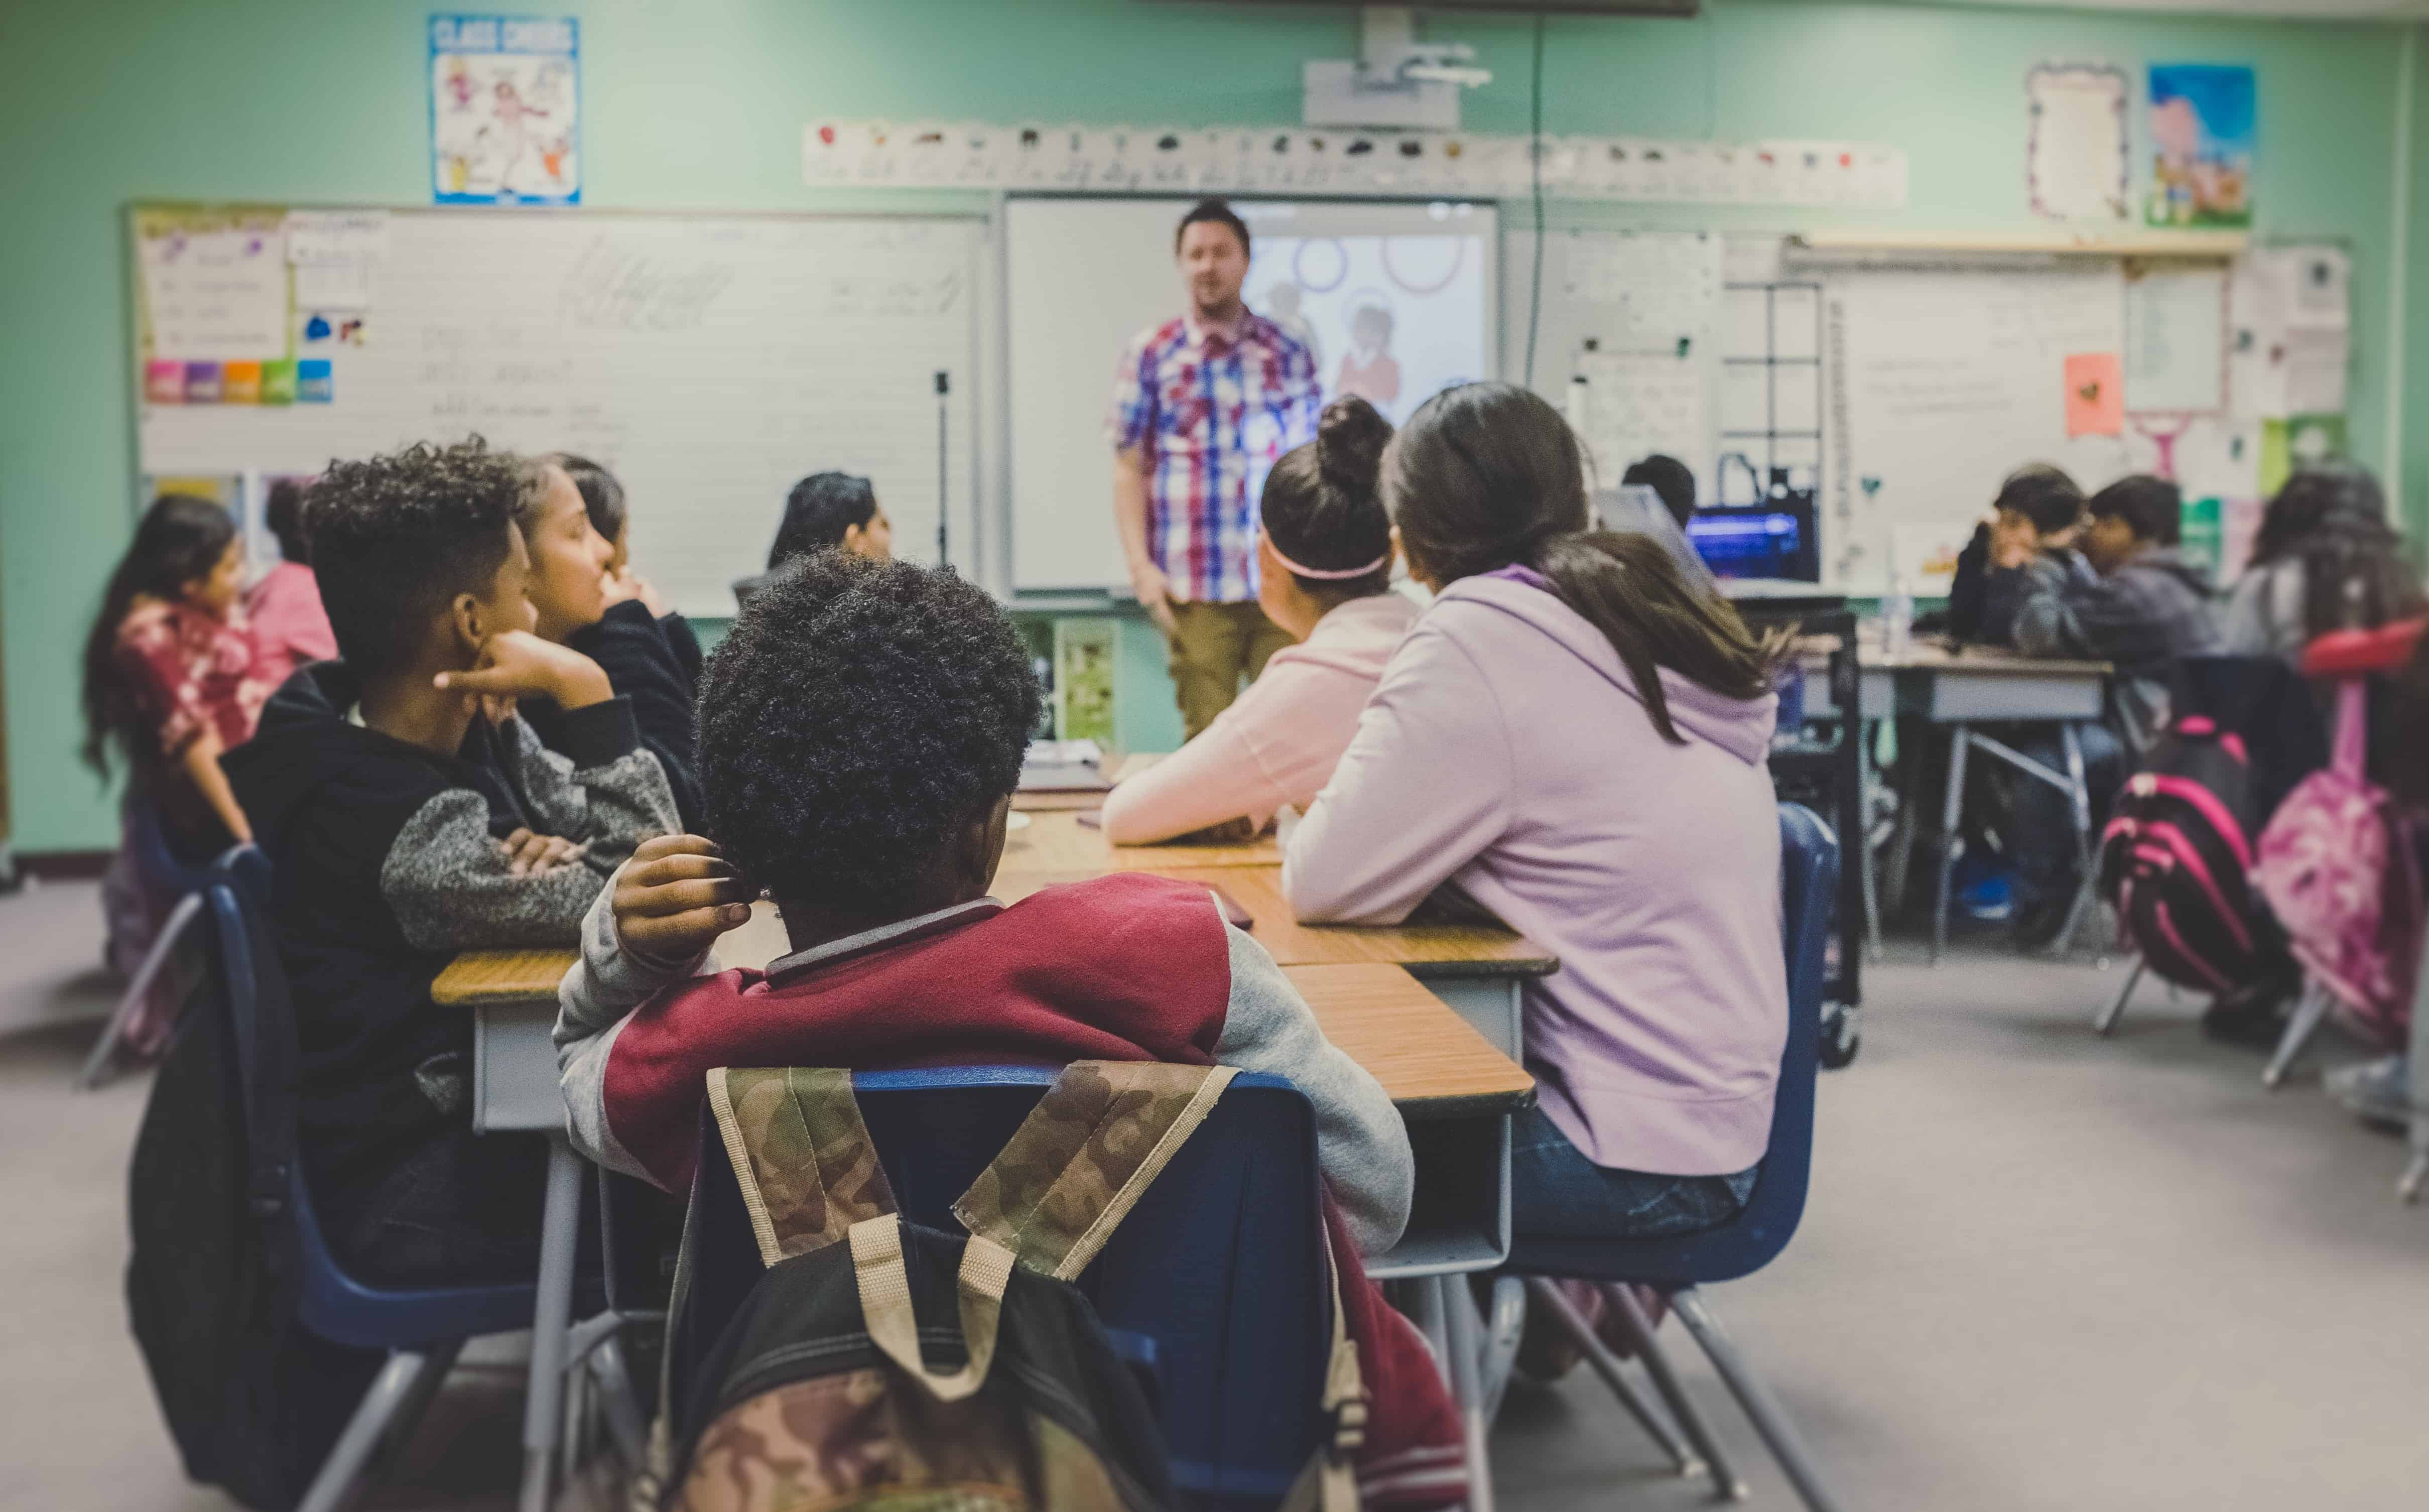 A drug called Lean is in schools and kids are using it. What is the drug Lean and what do we need to know? Add the Lean drug to the long list of things to worry about.